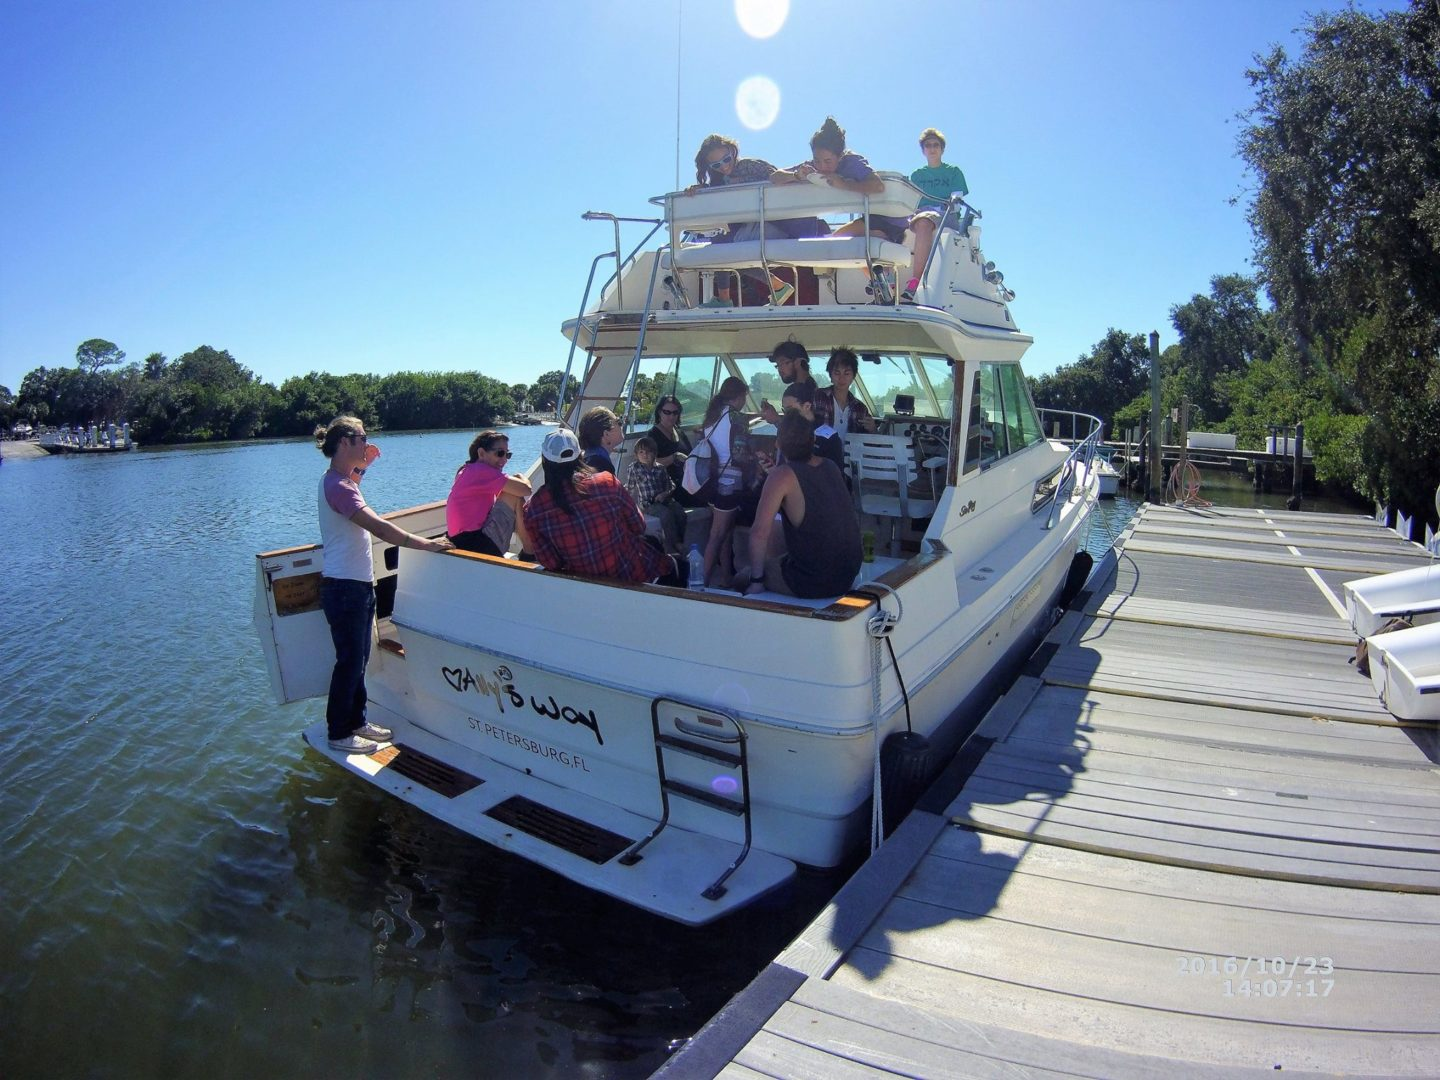 Two story SeaRay Boat docked at the Eckerd College Waterfront on Oct. 23.